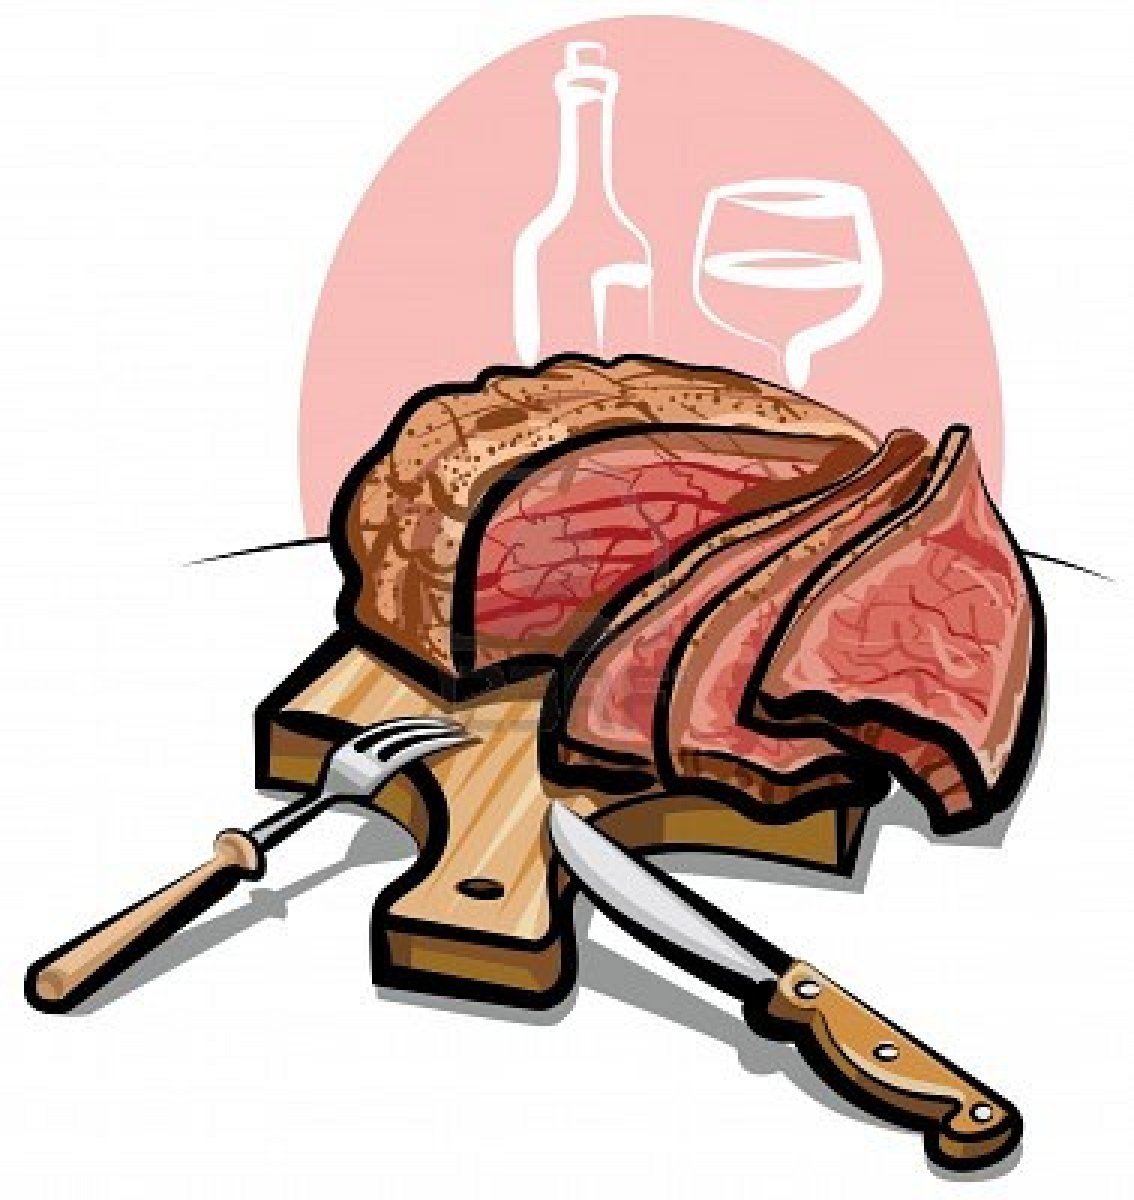 Meat clipart steak. Cooked image download snowjet